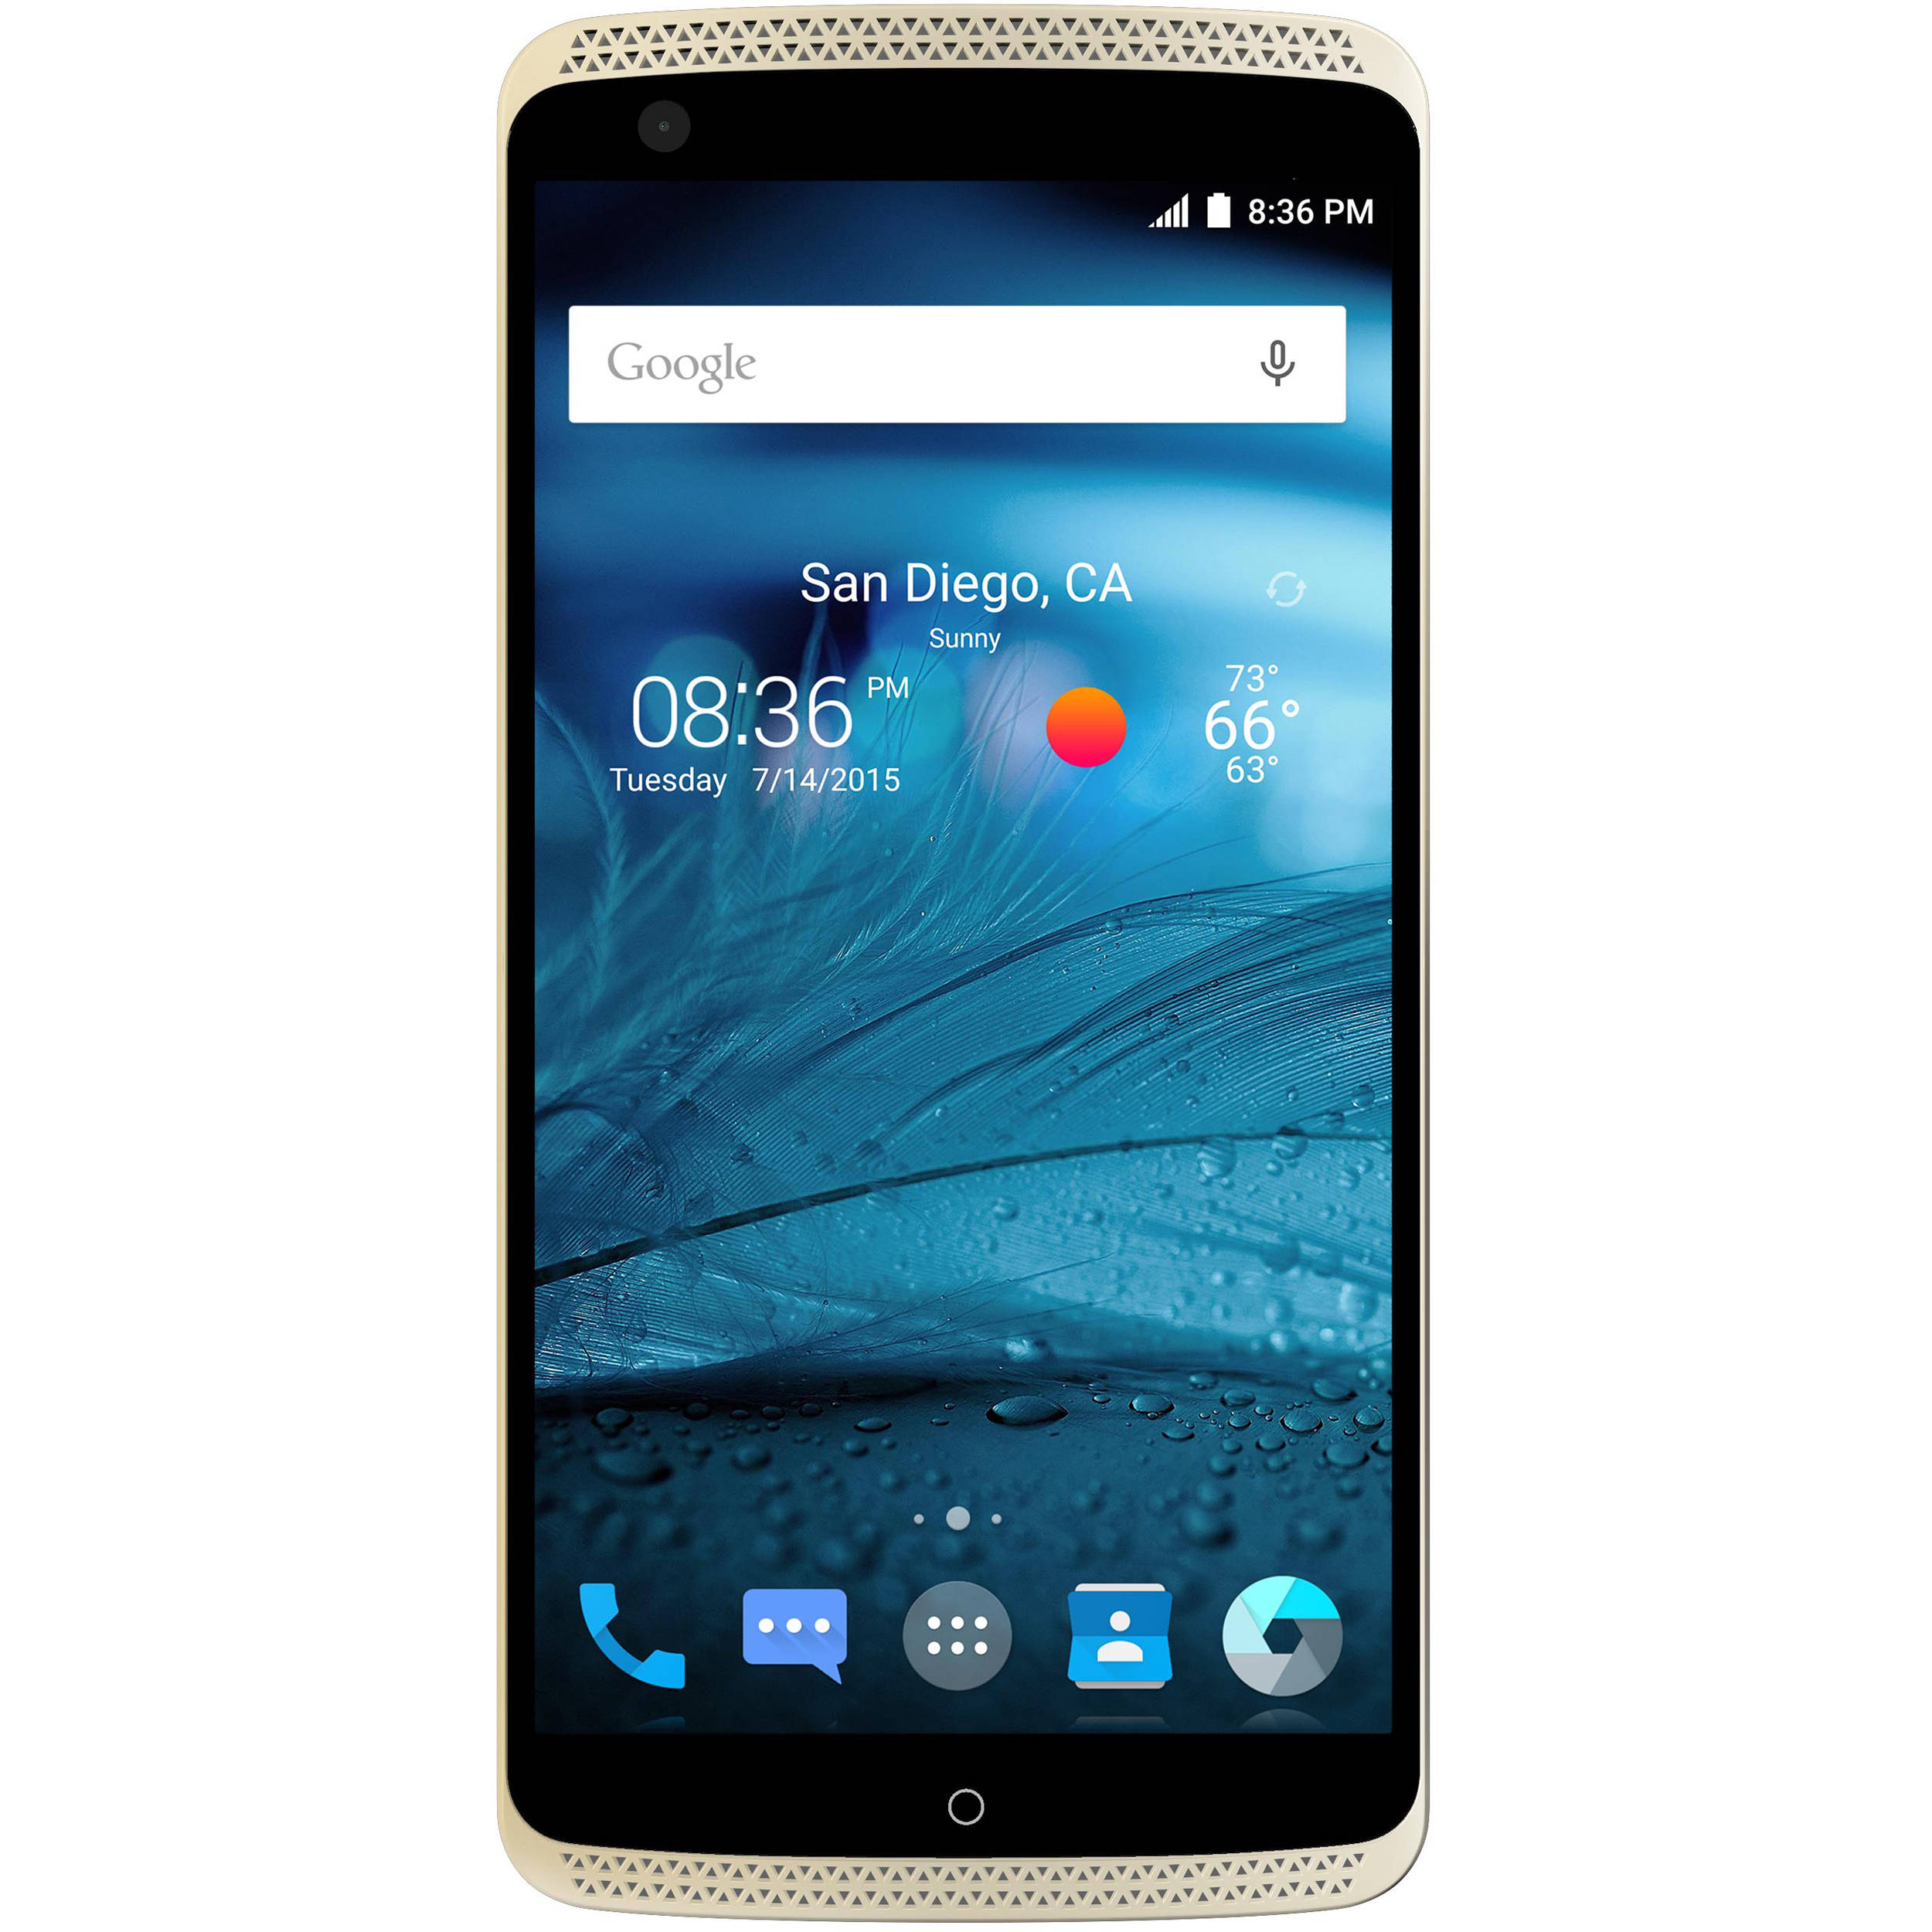 Read the zte axon 7 unlocked smartphone 64gb ion gold TOPWebsite